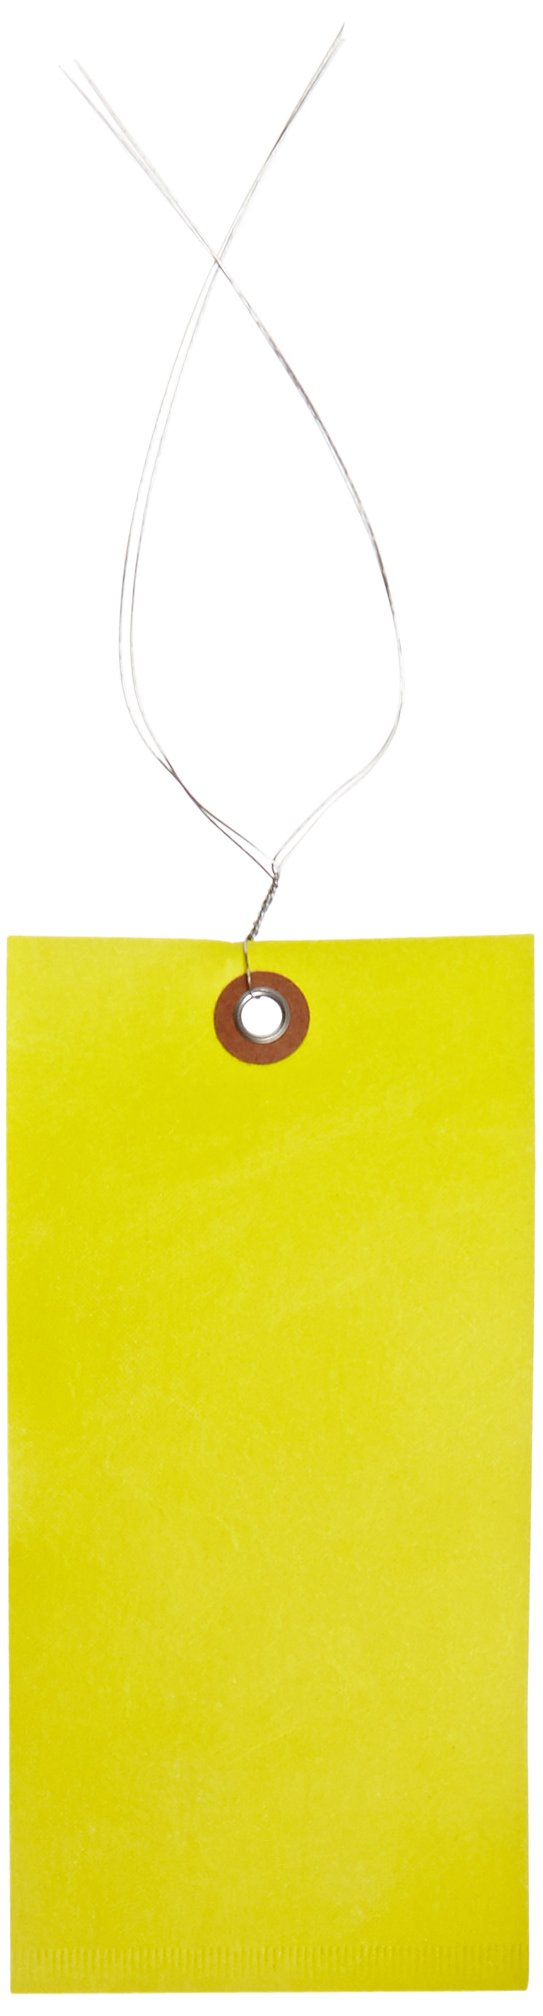 Quality Park G14083B Tyvek Spunbonded Olefin Pre-Wired Shipping Tag, 6-1/4'' Length x 3-1/8'' Width, Yellow (Case of 100) by Tyvek